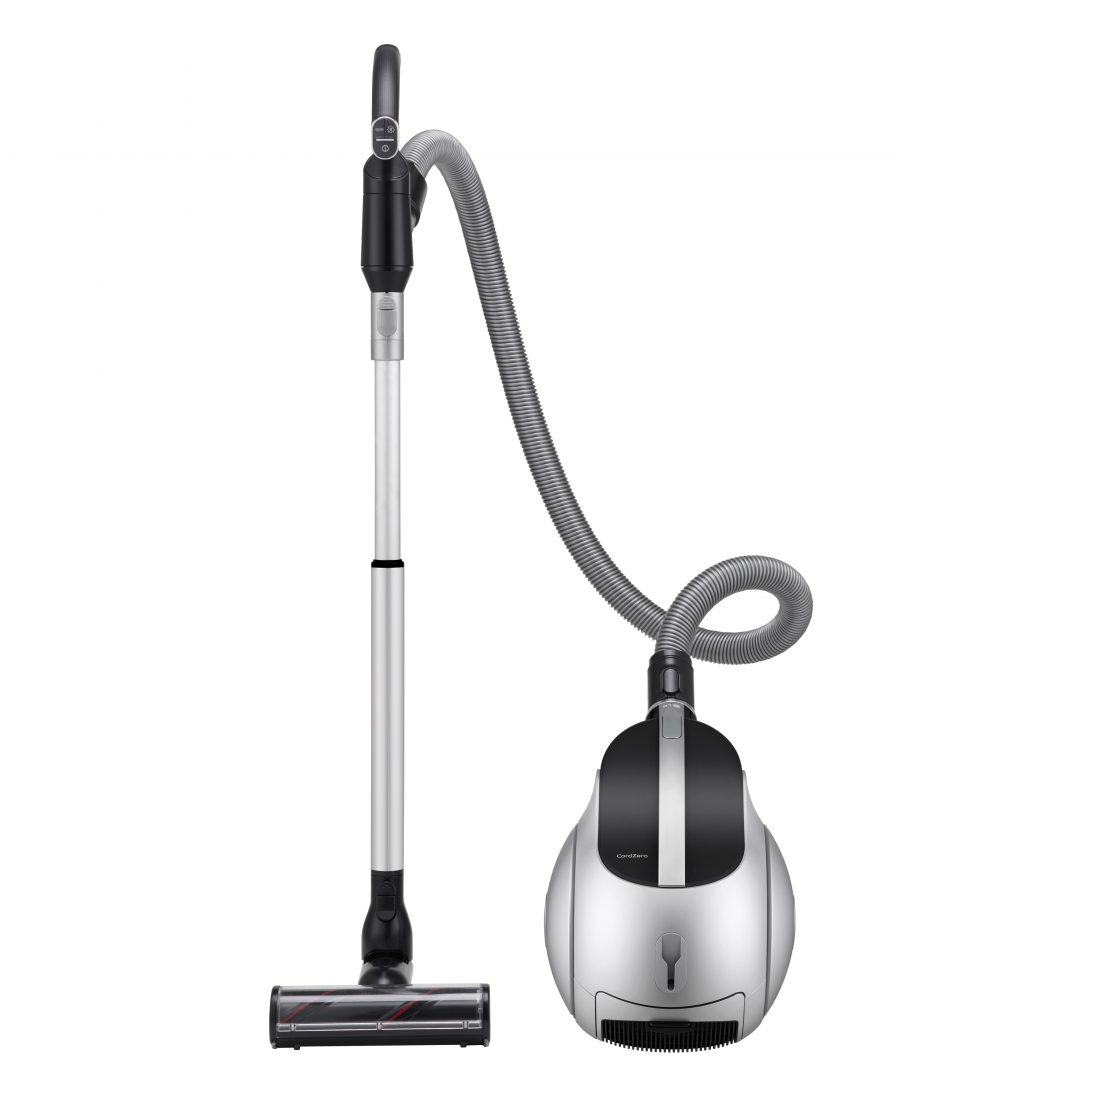 Front view of the LG CordZero Canister vacuum cleaner